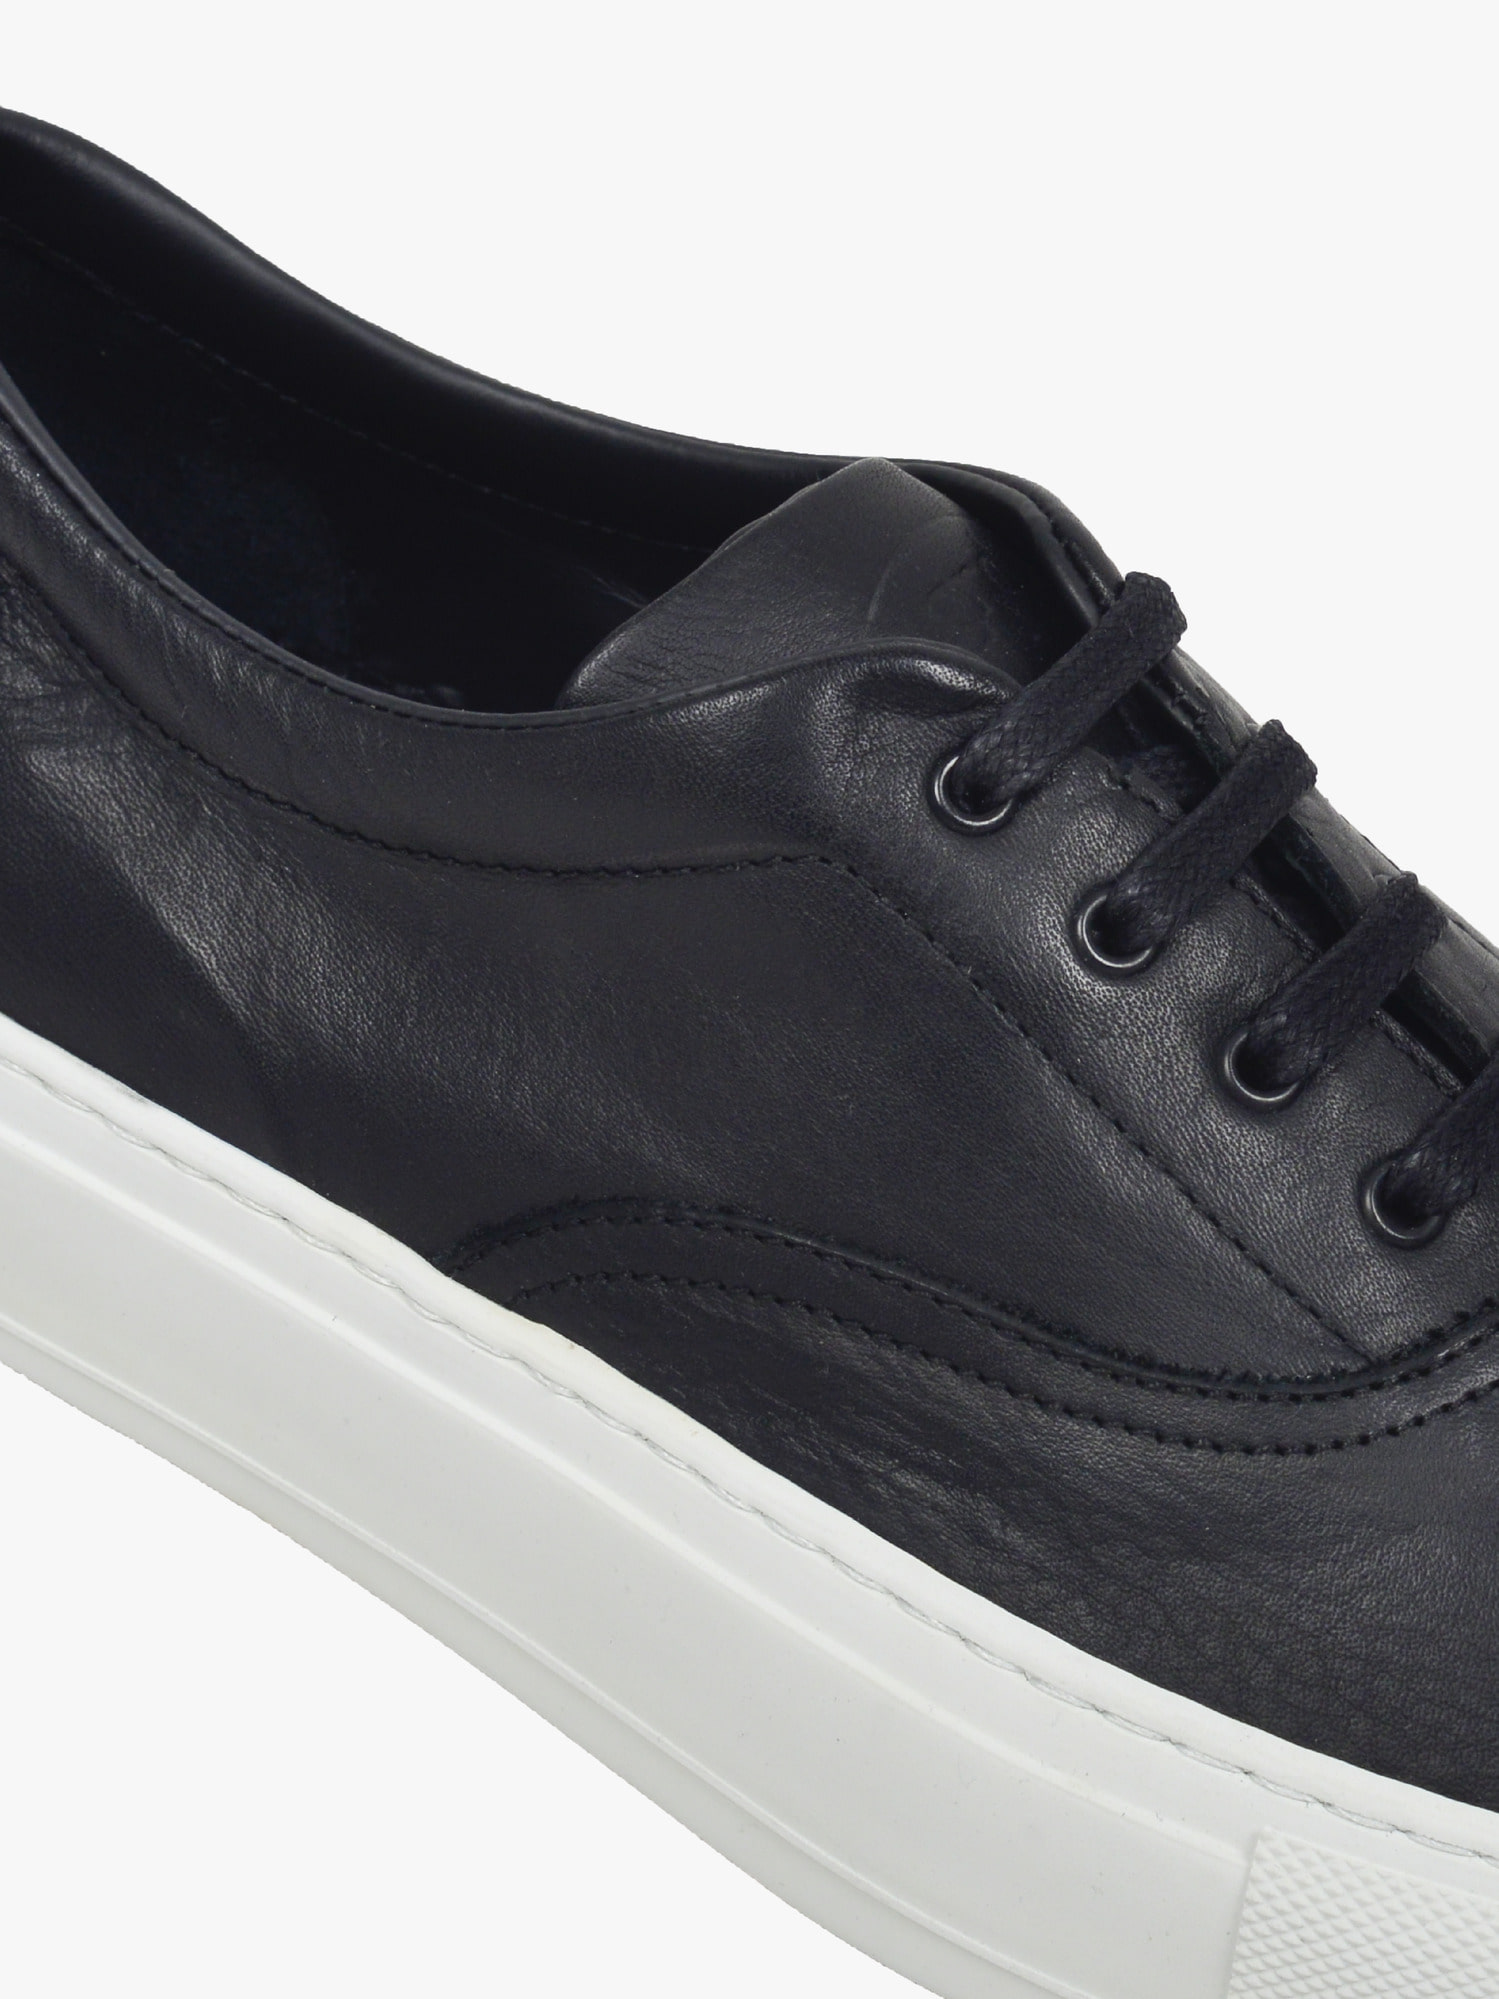 balmoral 01 leather black